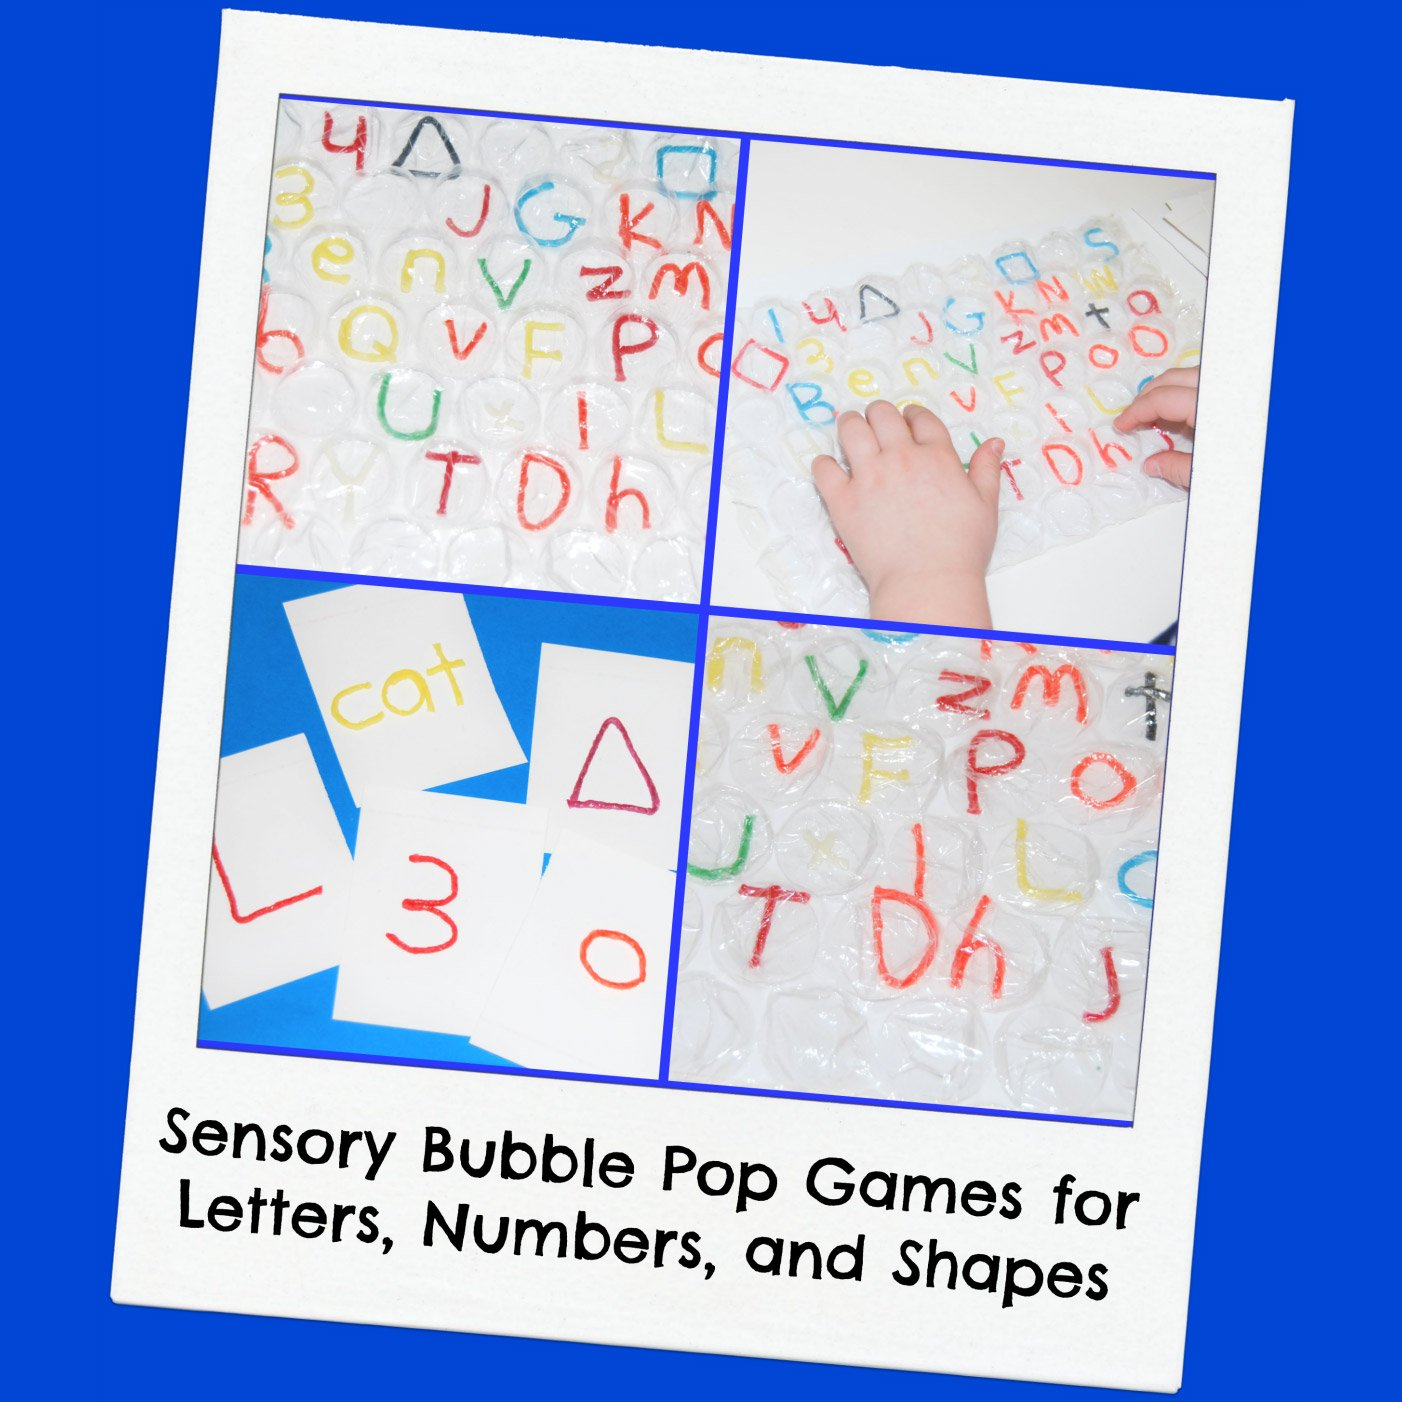 Sensory Bubble Pop Games for Kids